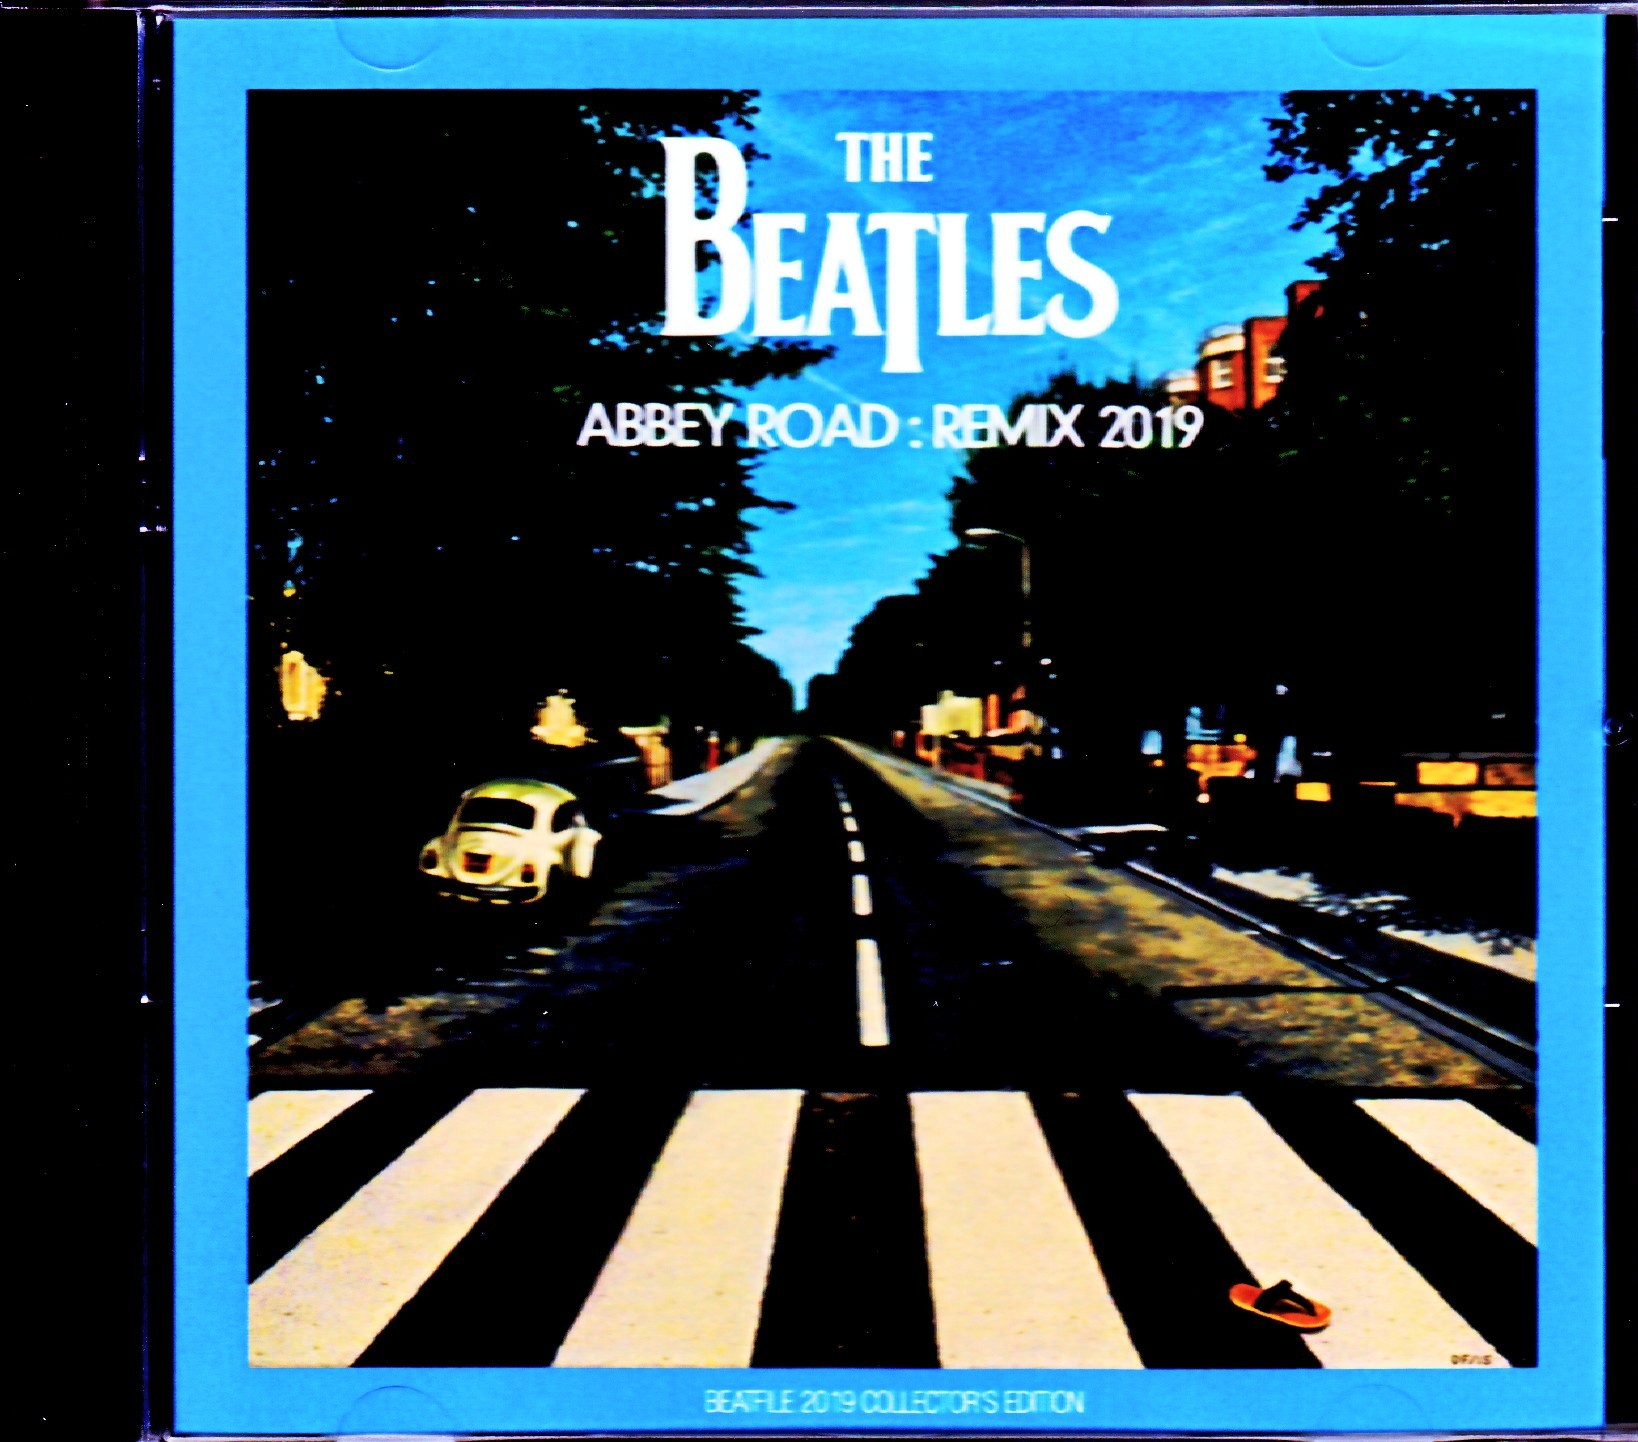 Beatles ビートルズ/Abbey Road New Remix and Remaster Compilation 2019